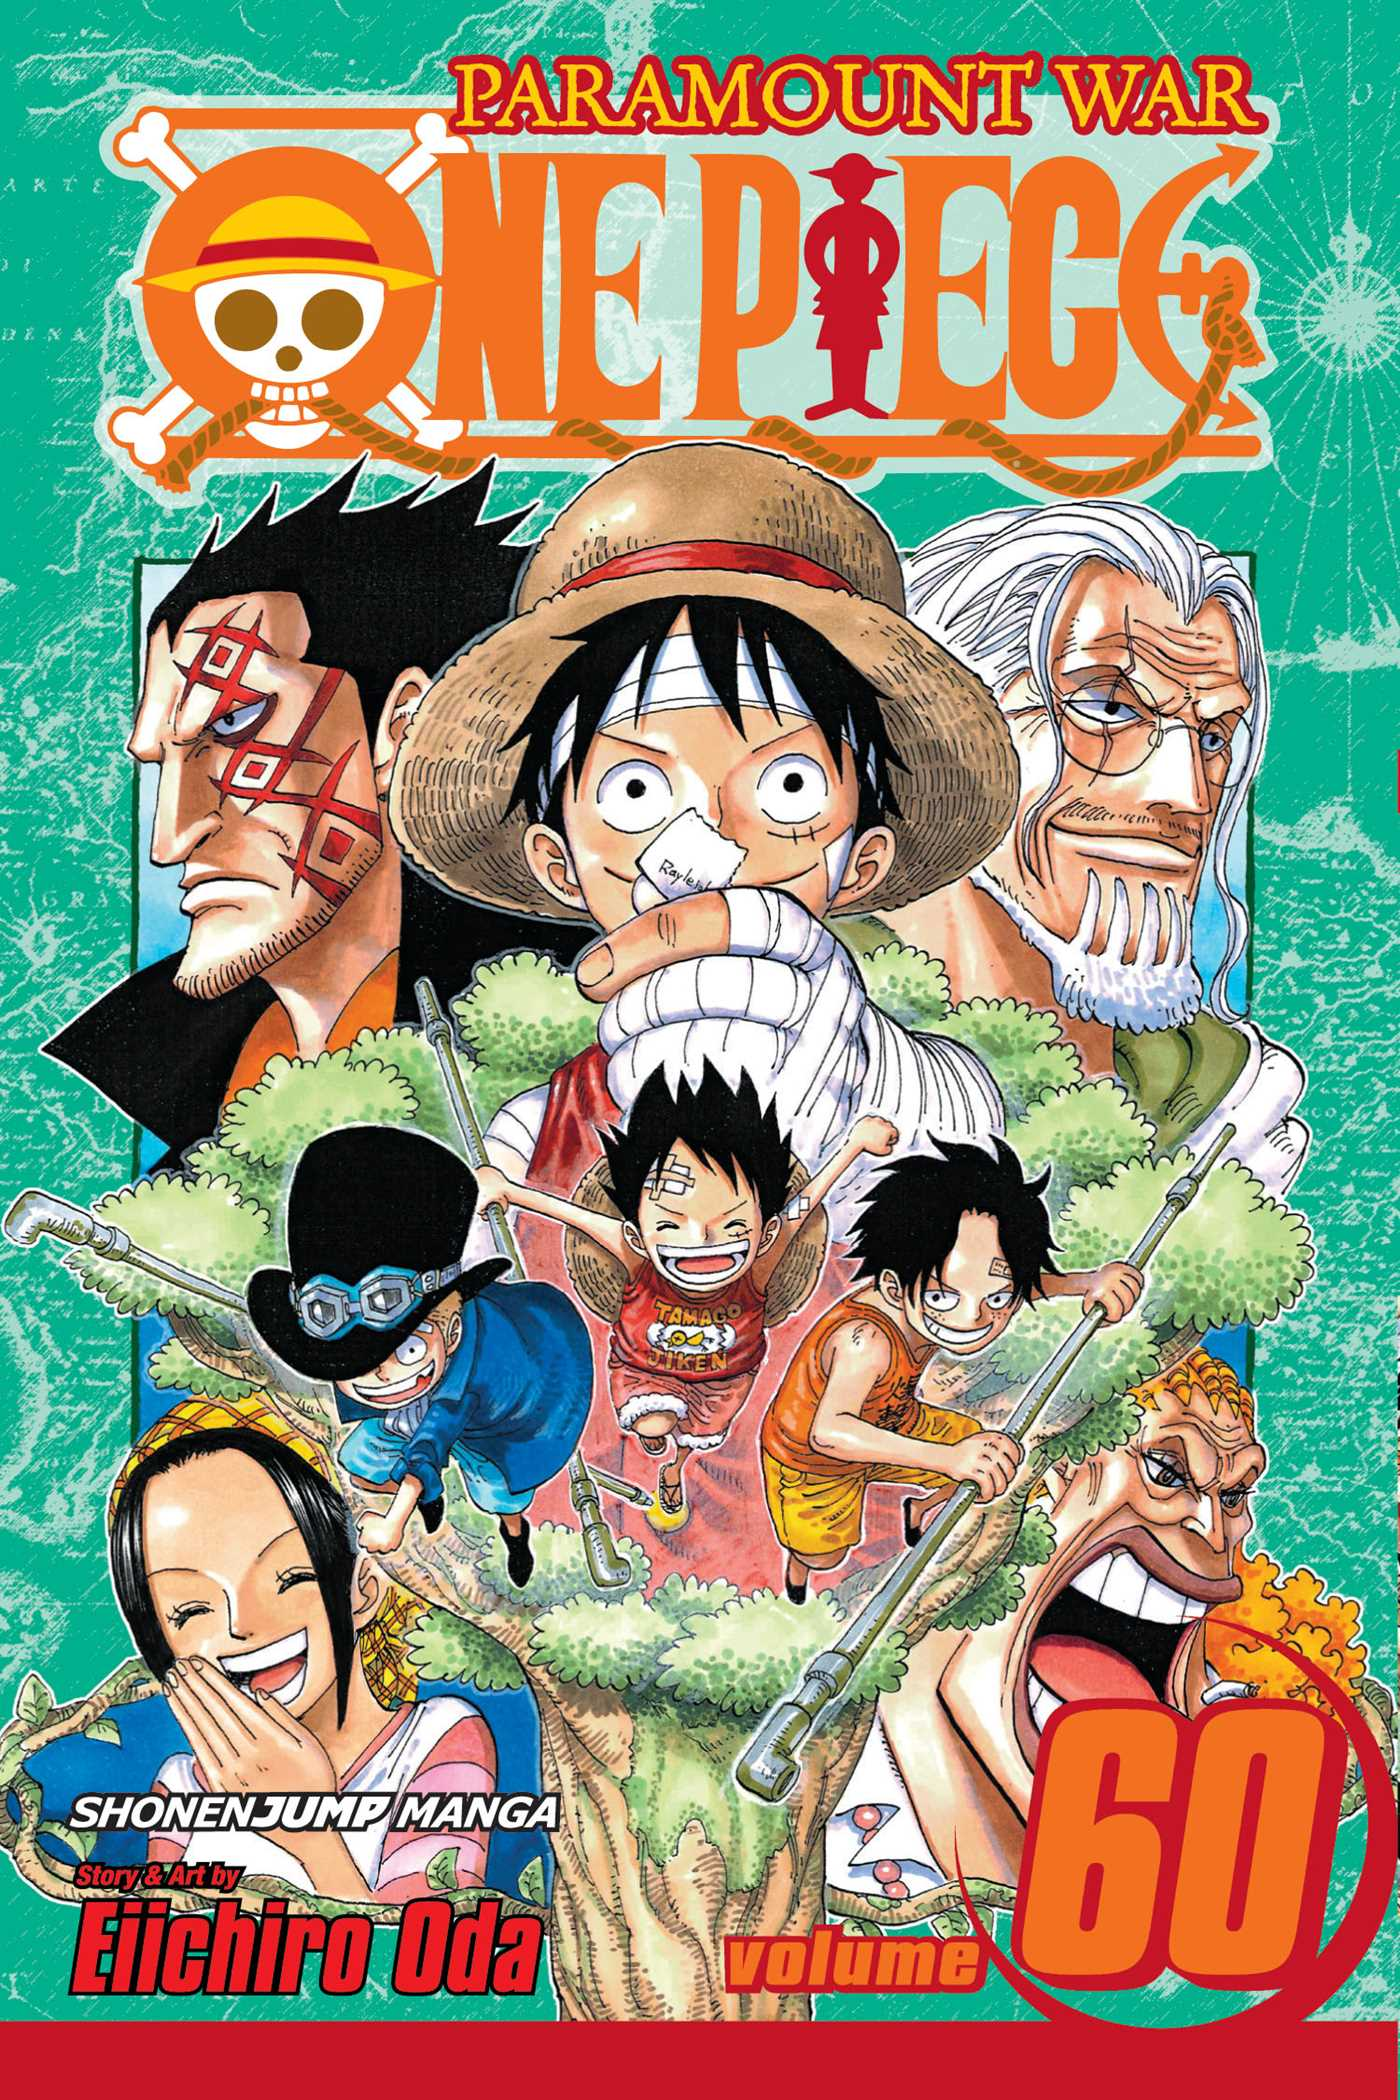 One-piece-vol-60-9781421540856_hr